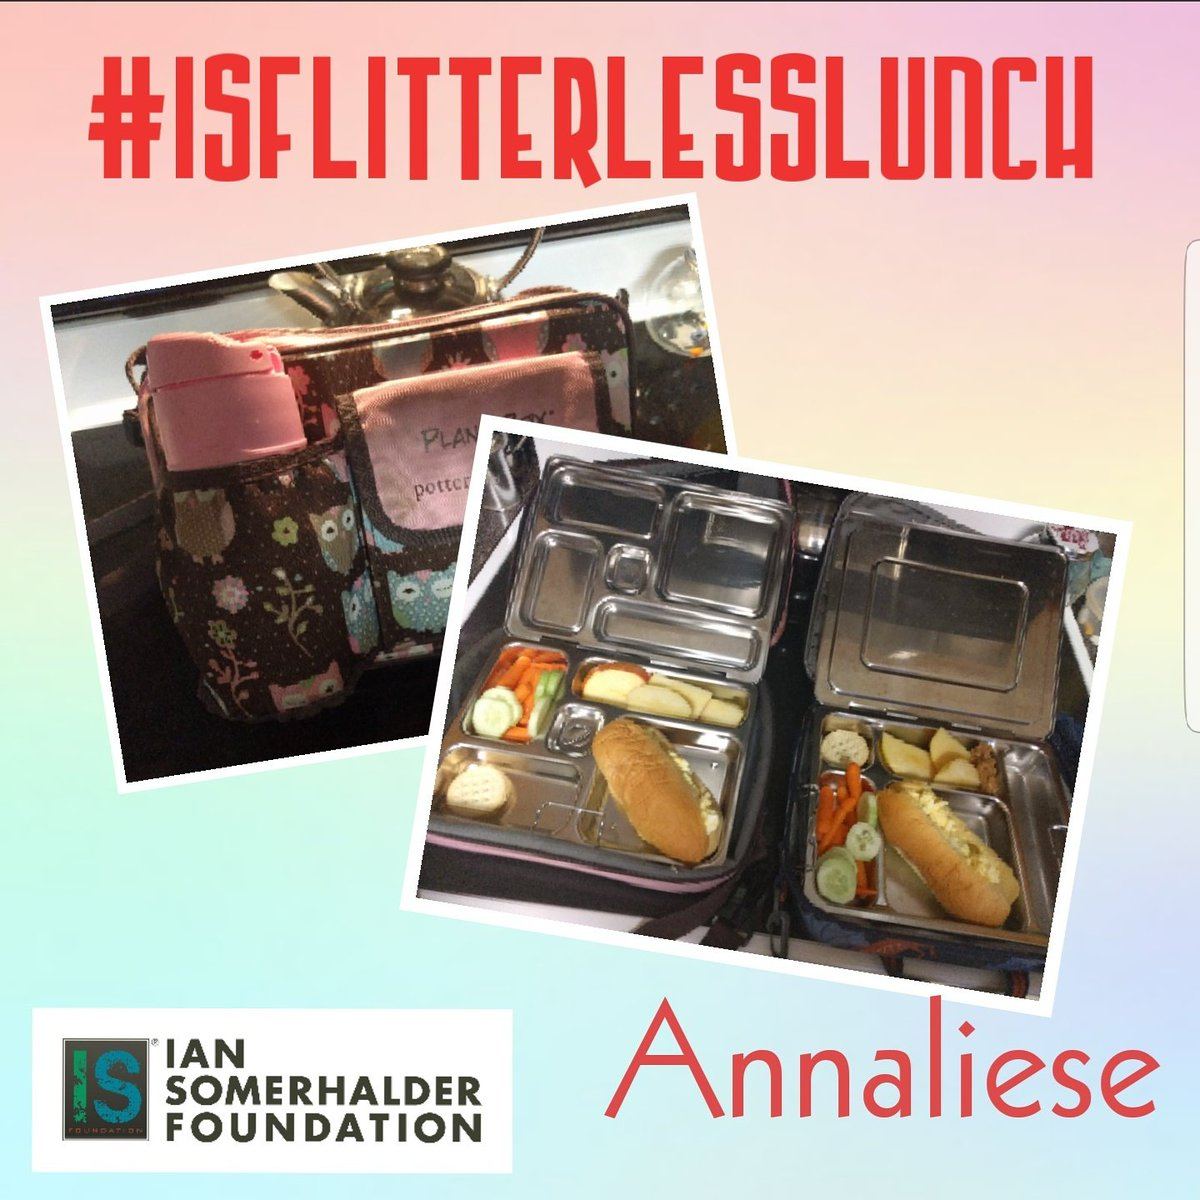 ISF YOUTH VOLUNTEER ANNALIESE ! THANKS FOR SHARING YOUR PICS AND TIPS FOR AN #ISFLITTERLESSLUNCH  #ISFYOUTH #BUYINBULK #SAVETHEPLANET #IANSOMERHALDERFOUNDATION.<br>http://pic.twitter.com/pVvxDHwm9X